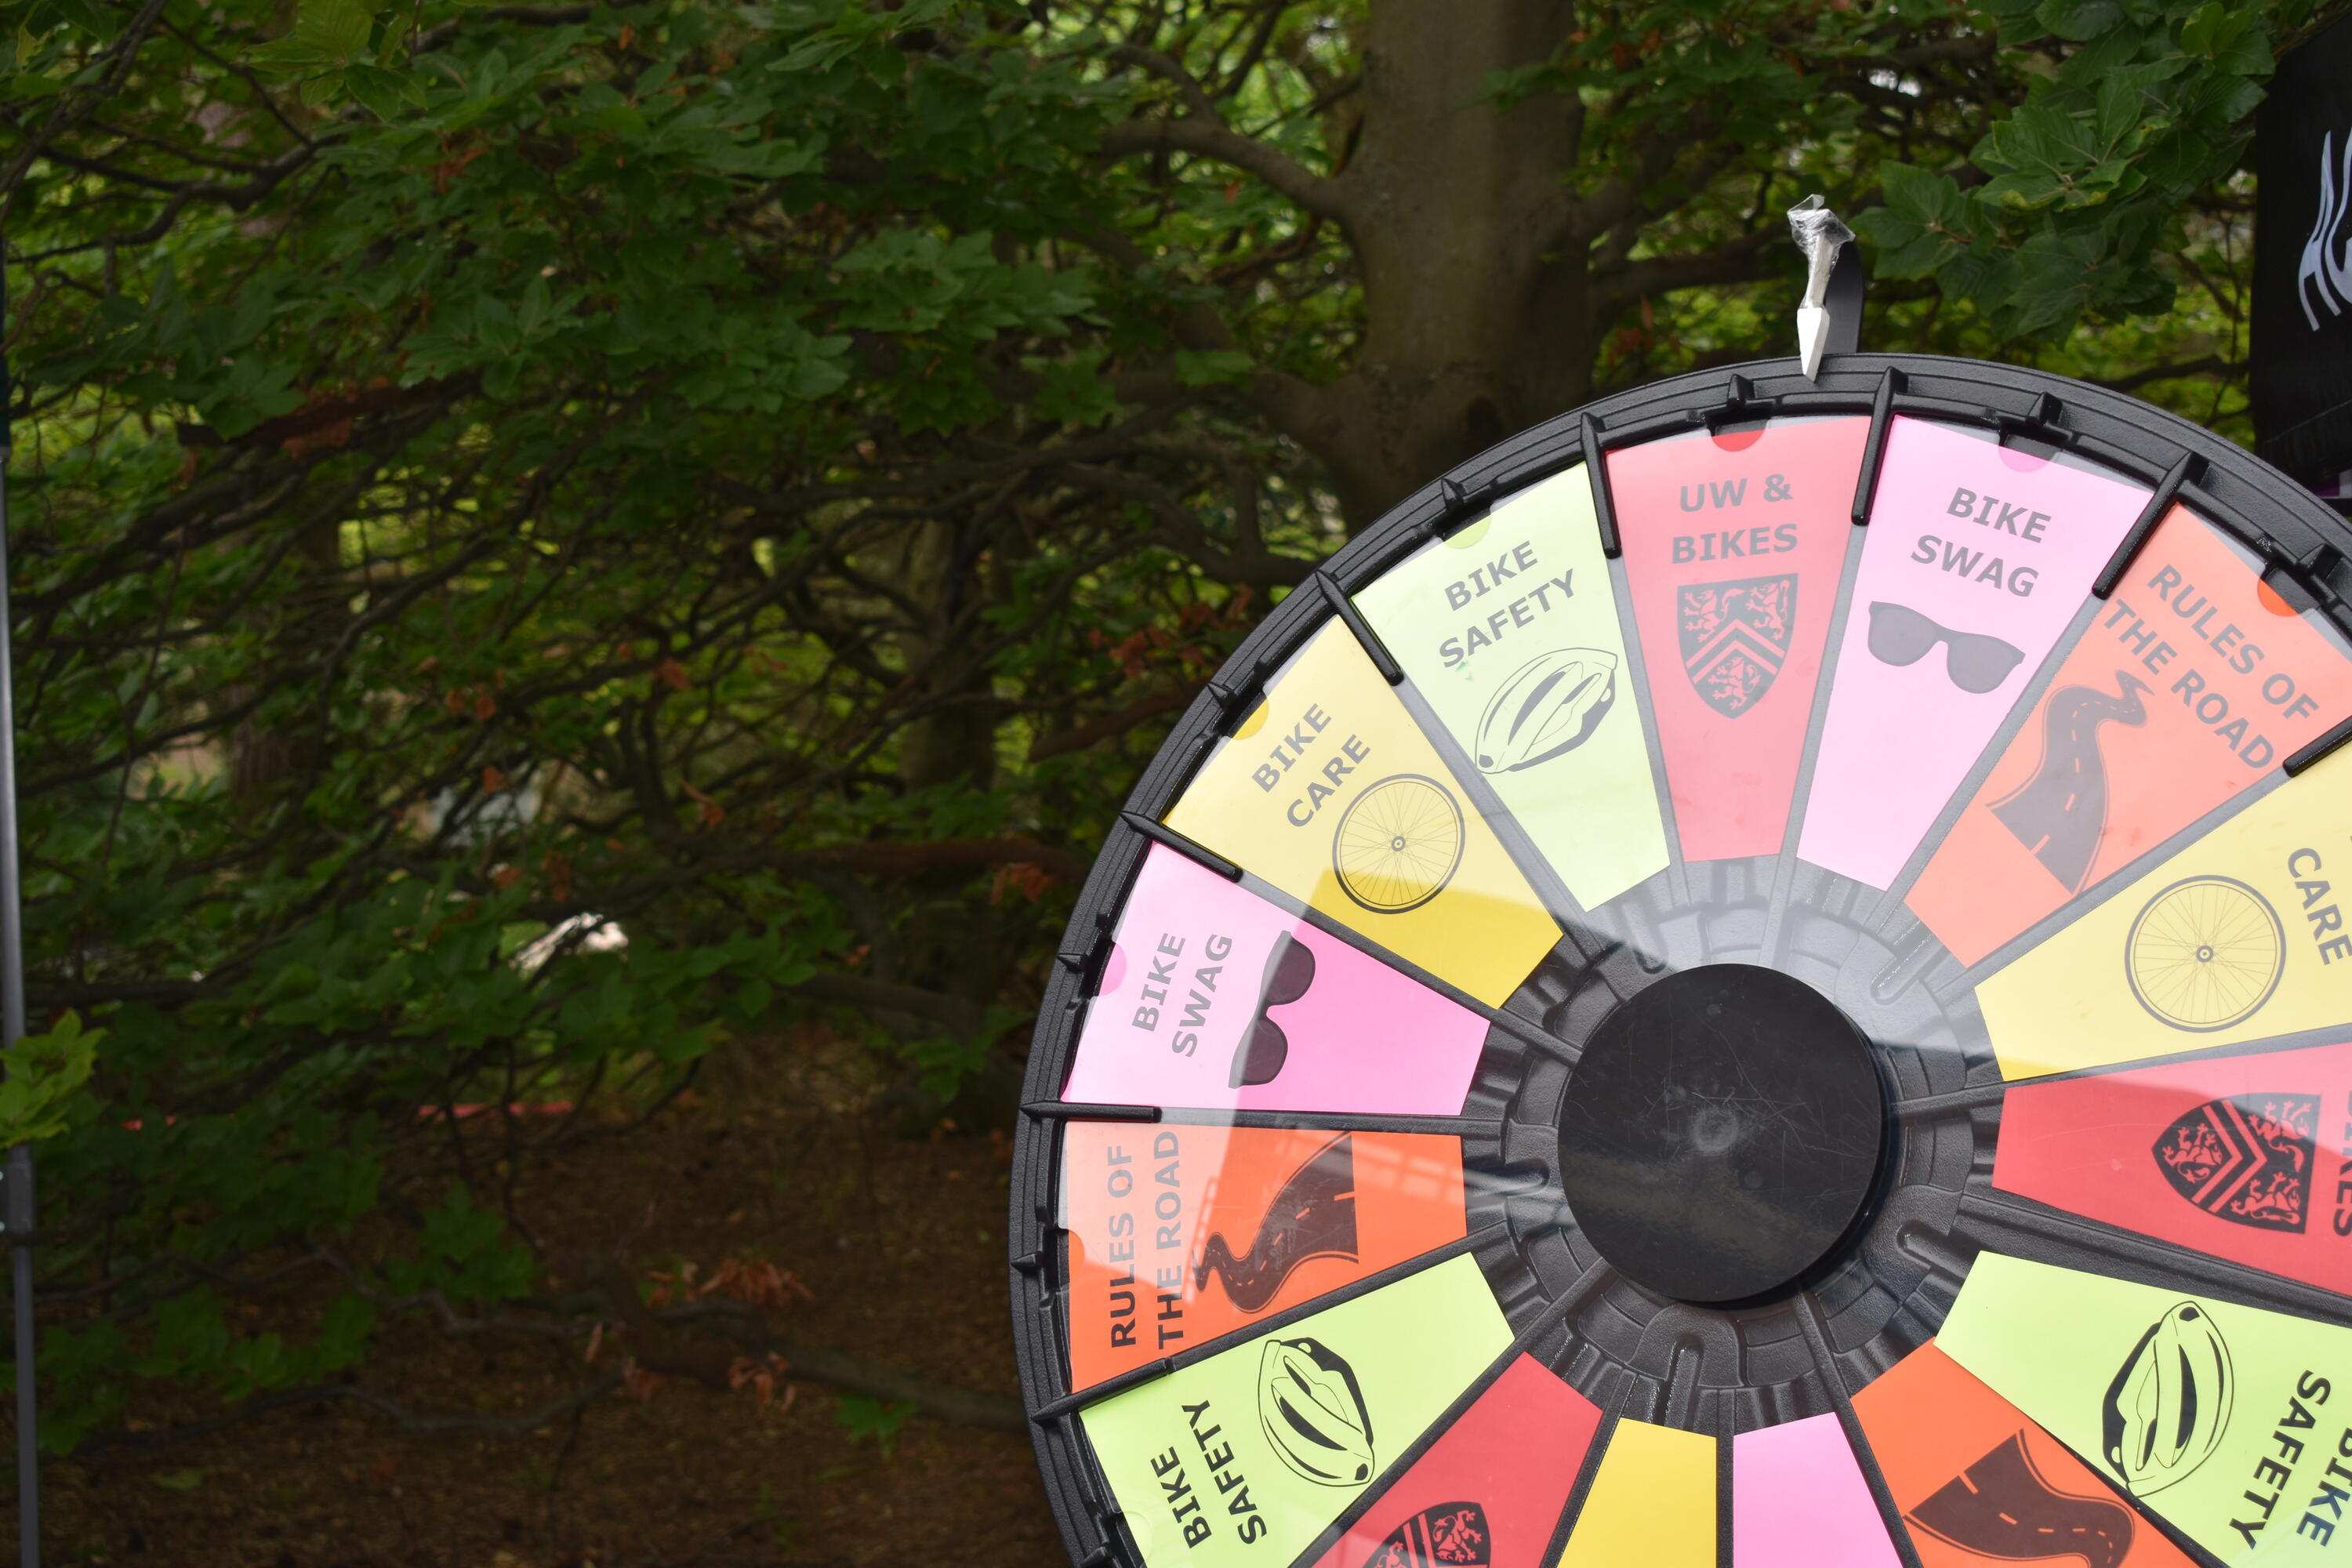 Spin-the-wheel activity with cycling-related prizes